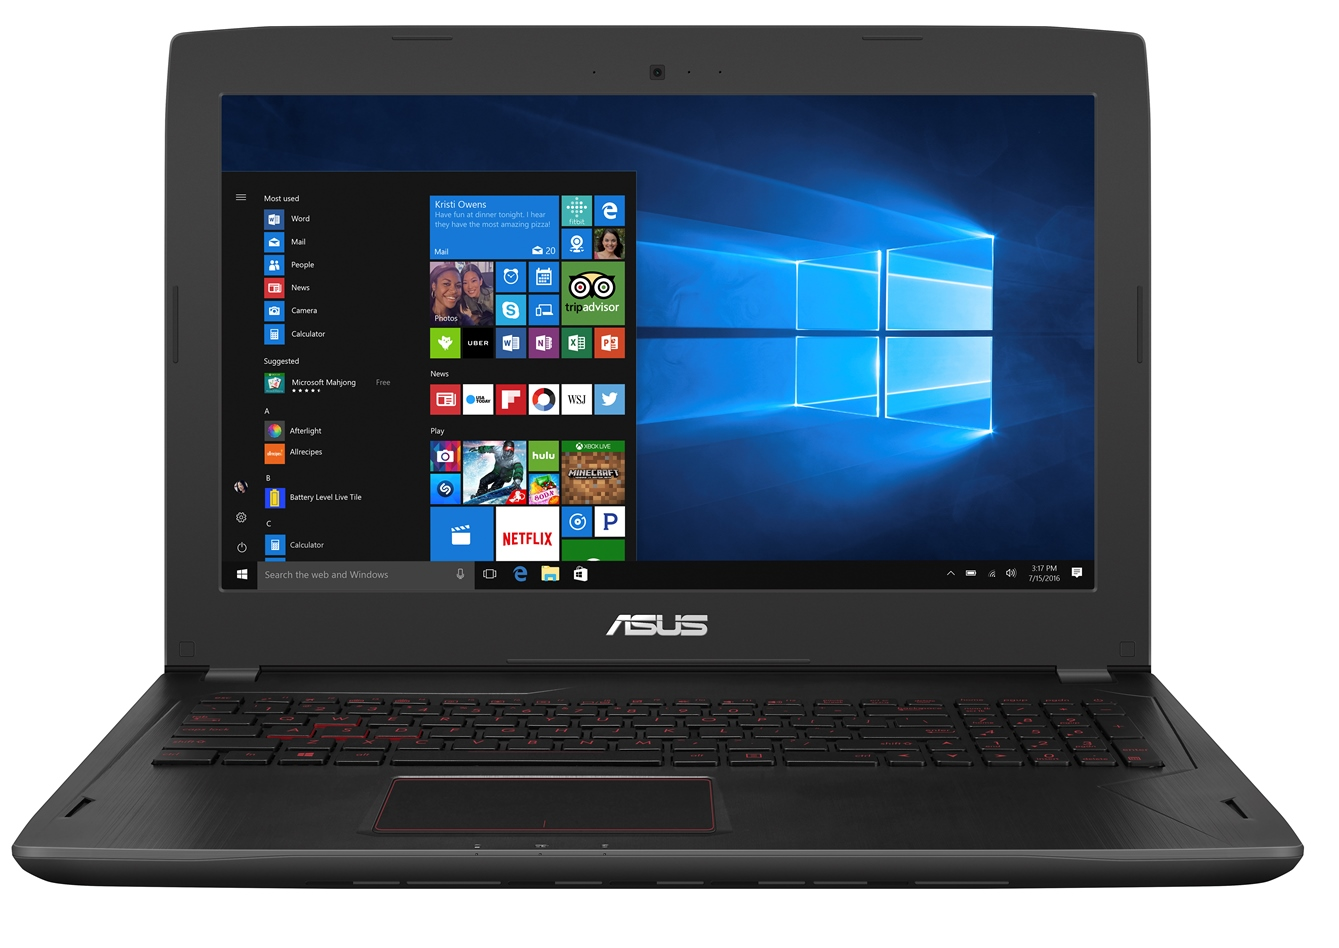 "ASUS FX502VE-FY057T i5-7300HQ/8GB/1TB 7200 ot./GeForce GTX 1050 Ti/15,6"" FHD IPS matný/BT/W10 Home/Black"